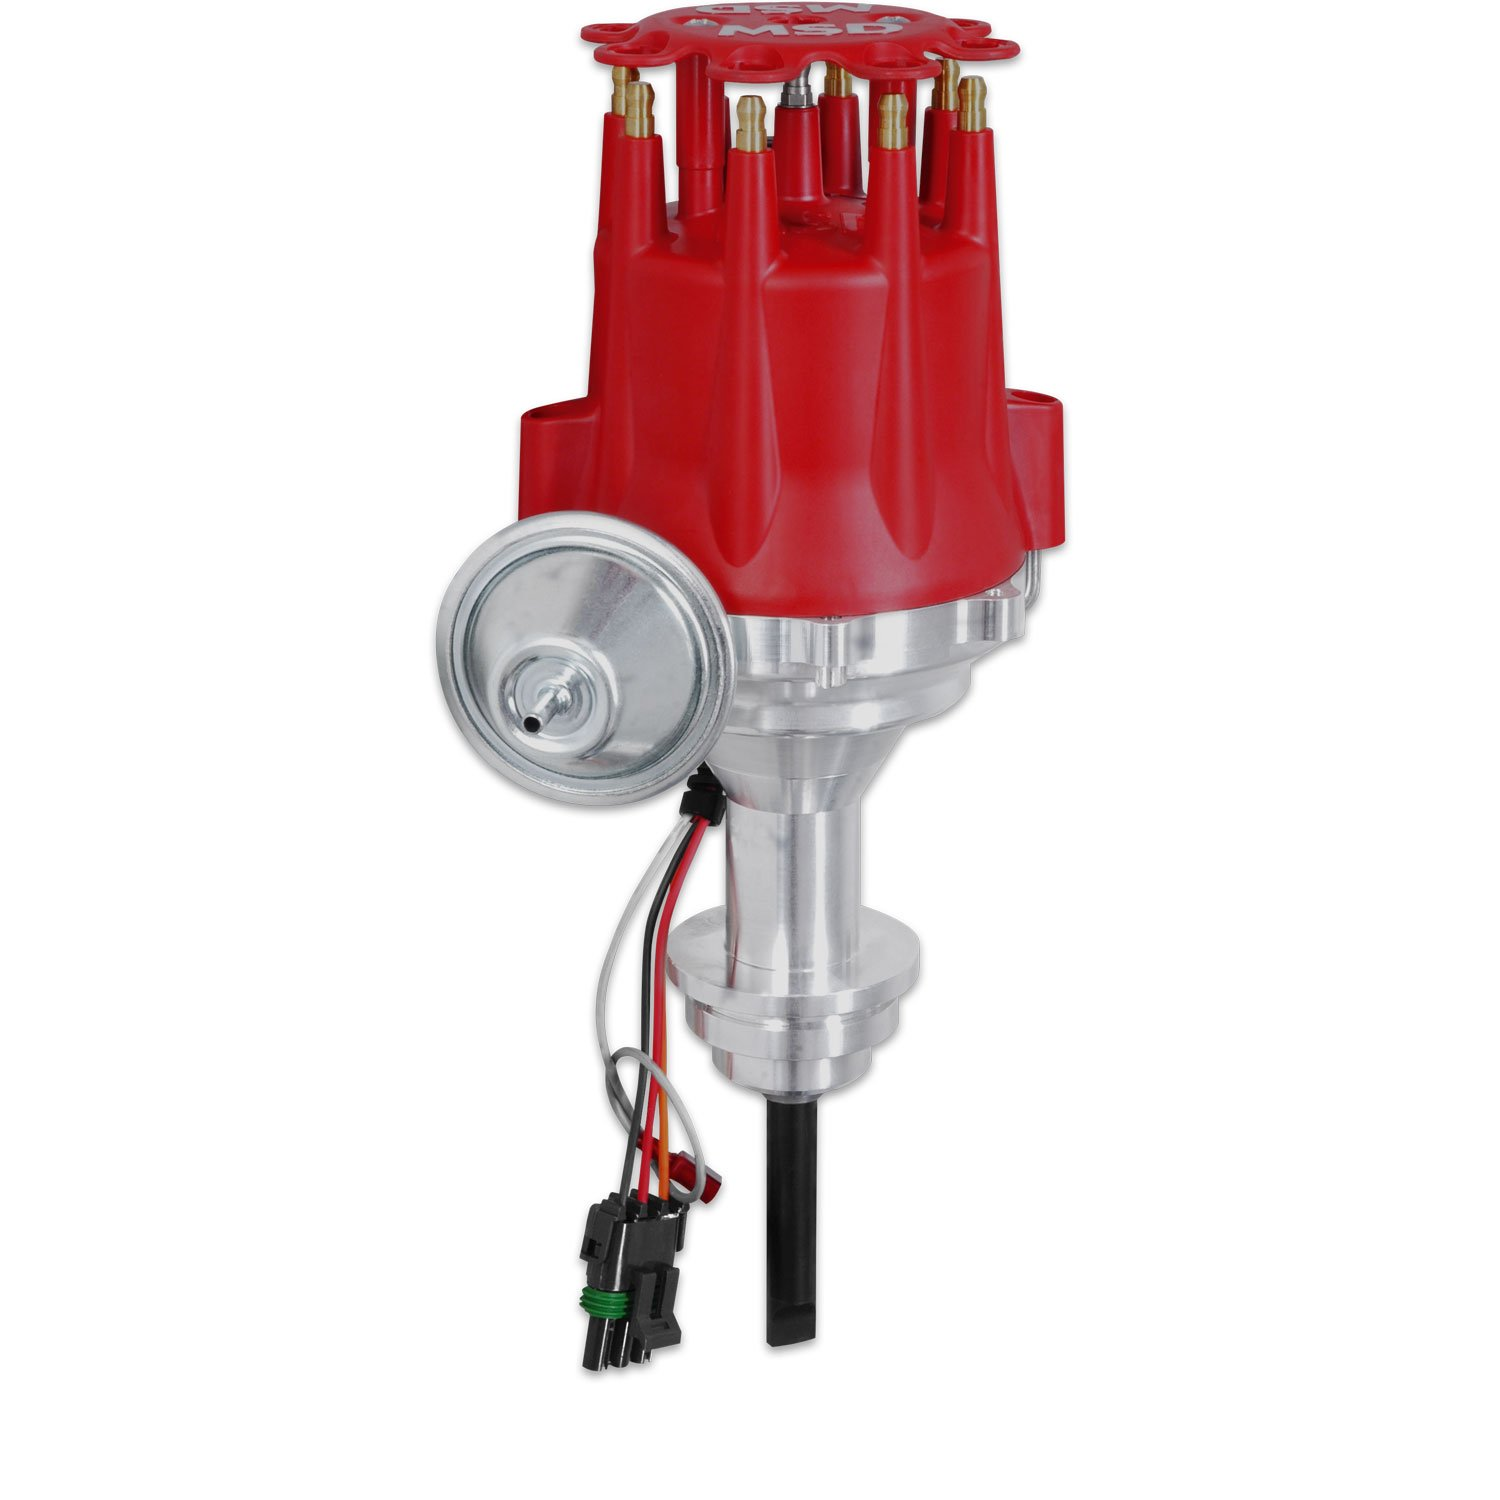 8388 - Chrysler 318-360, Ready-to-Run Distributor Image